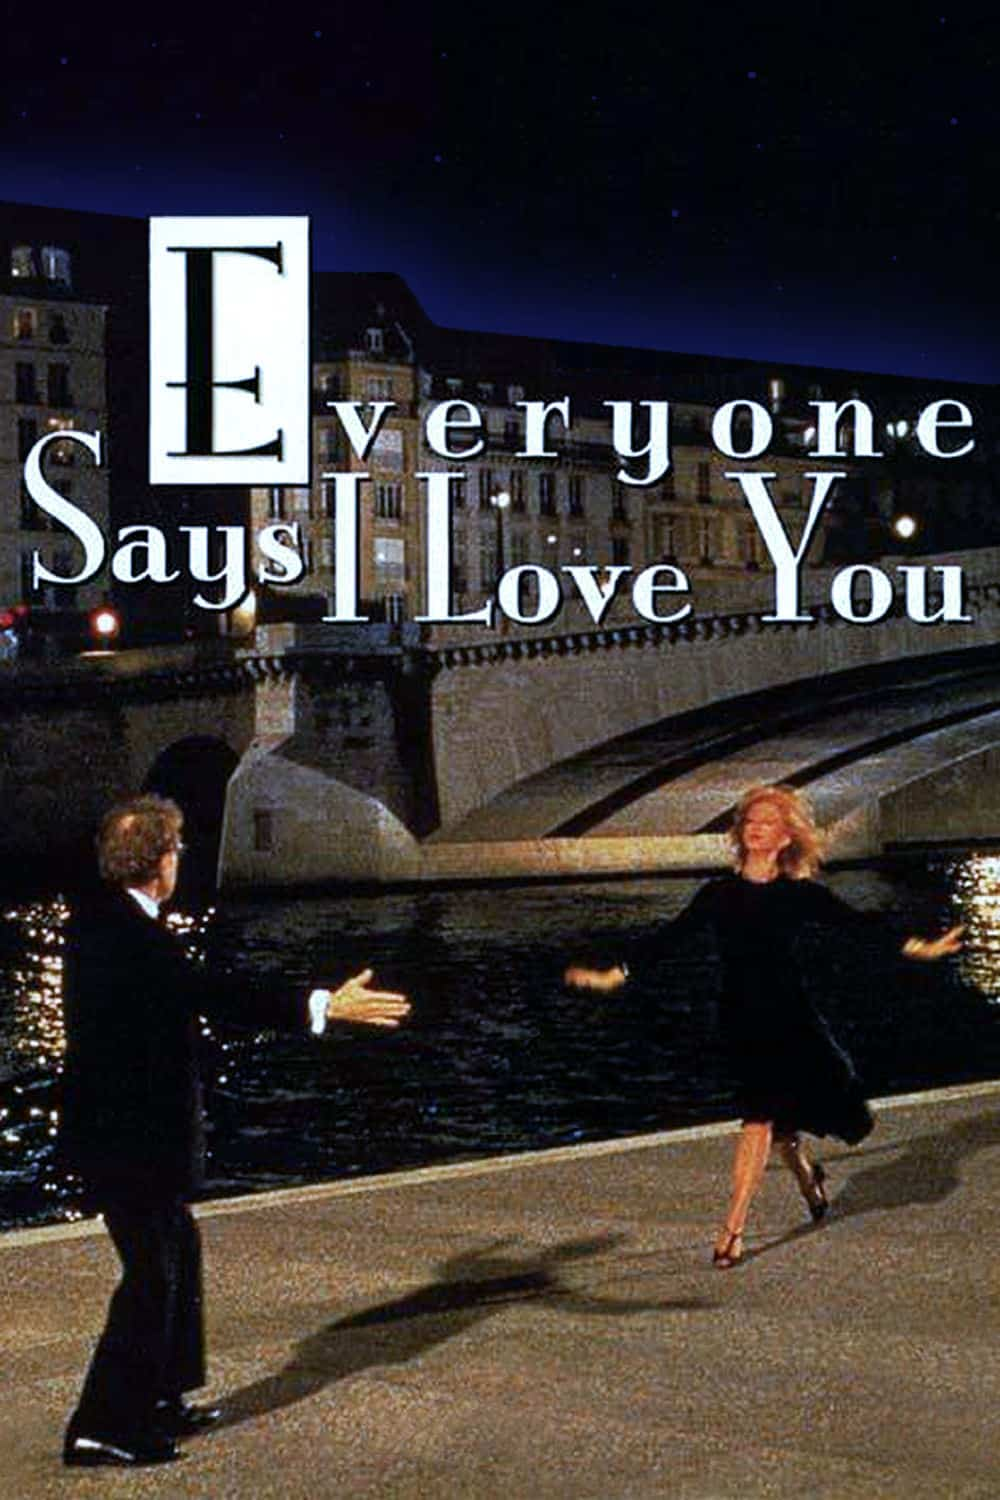 Everyone Says I Love You, 1996